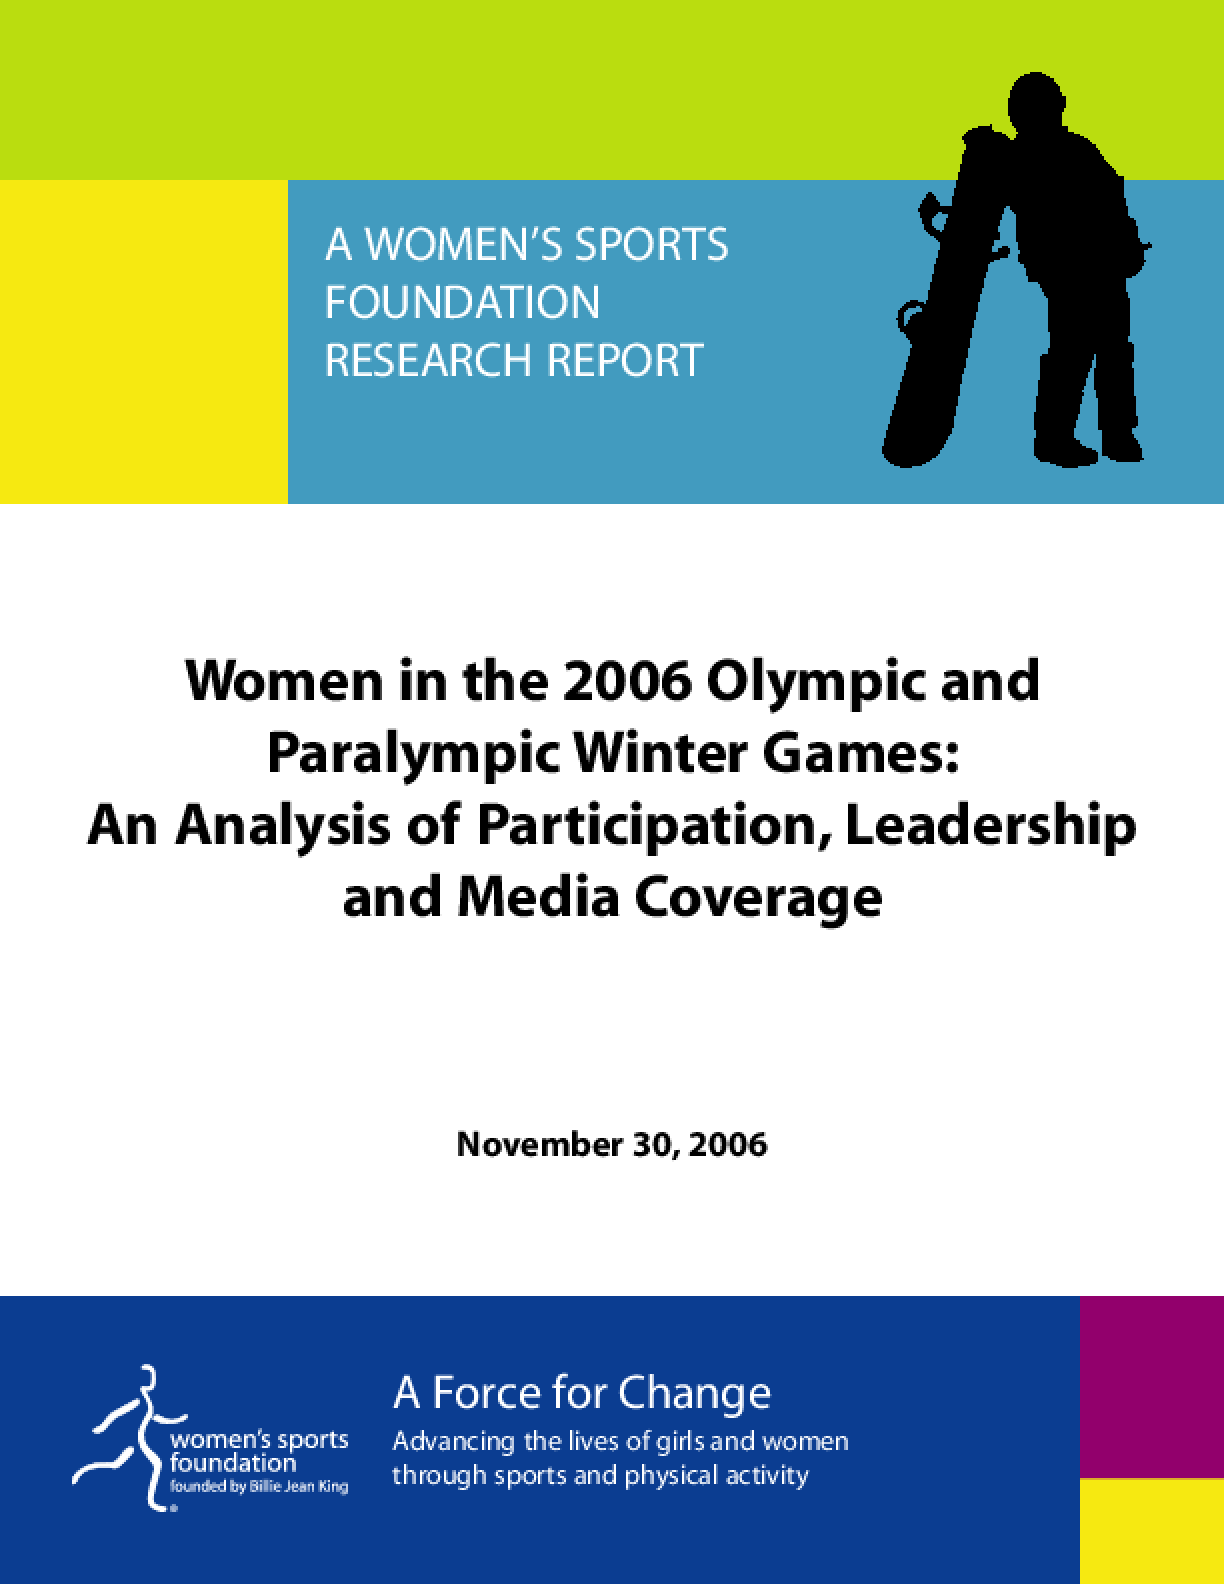 Women in the 2006 Olympic and Paralympic Winter Games: An Analysis of Participation, Leadership and Media Coverage